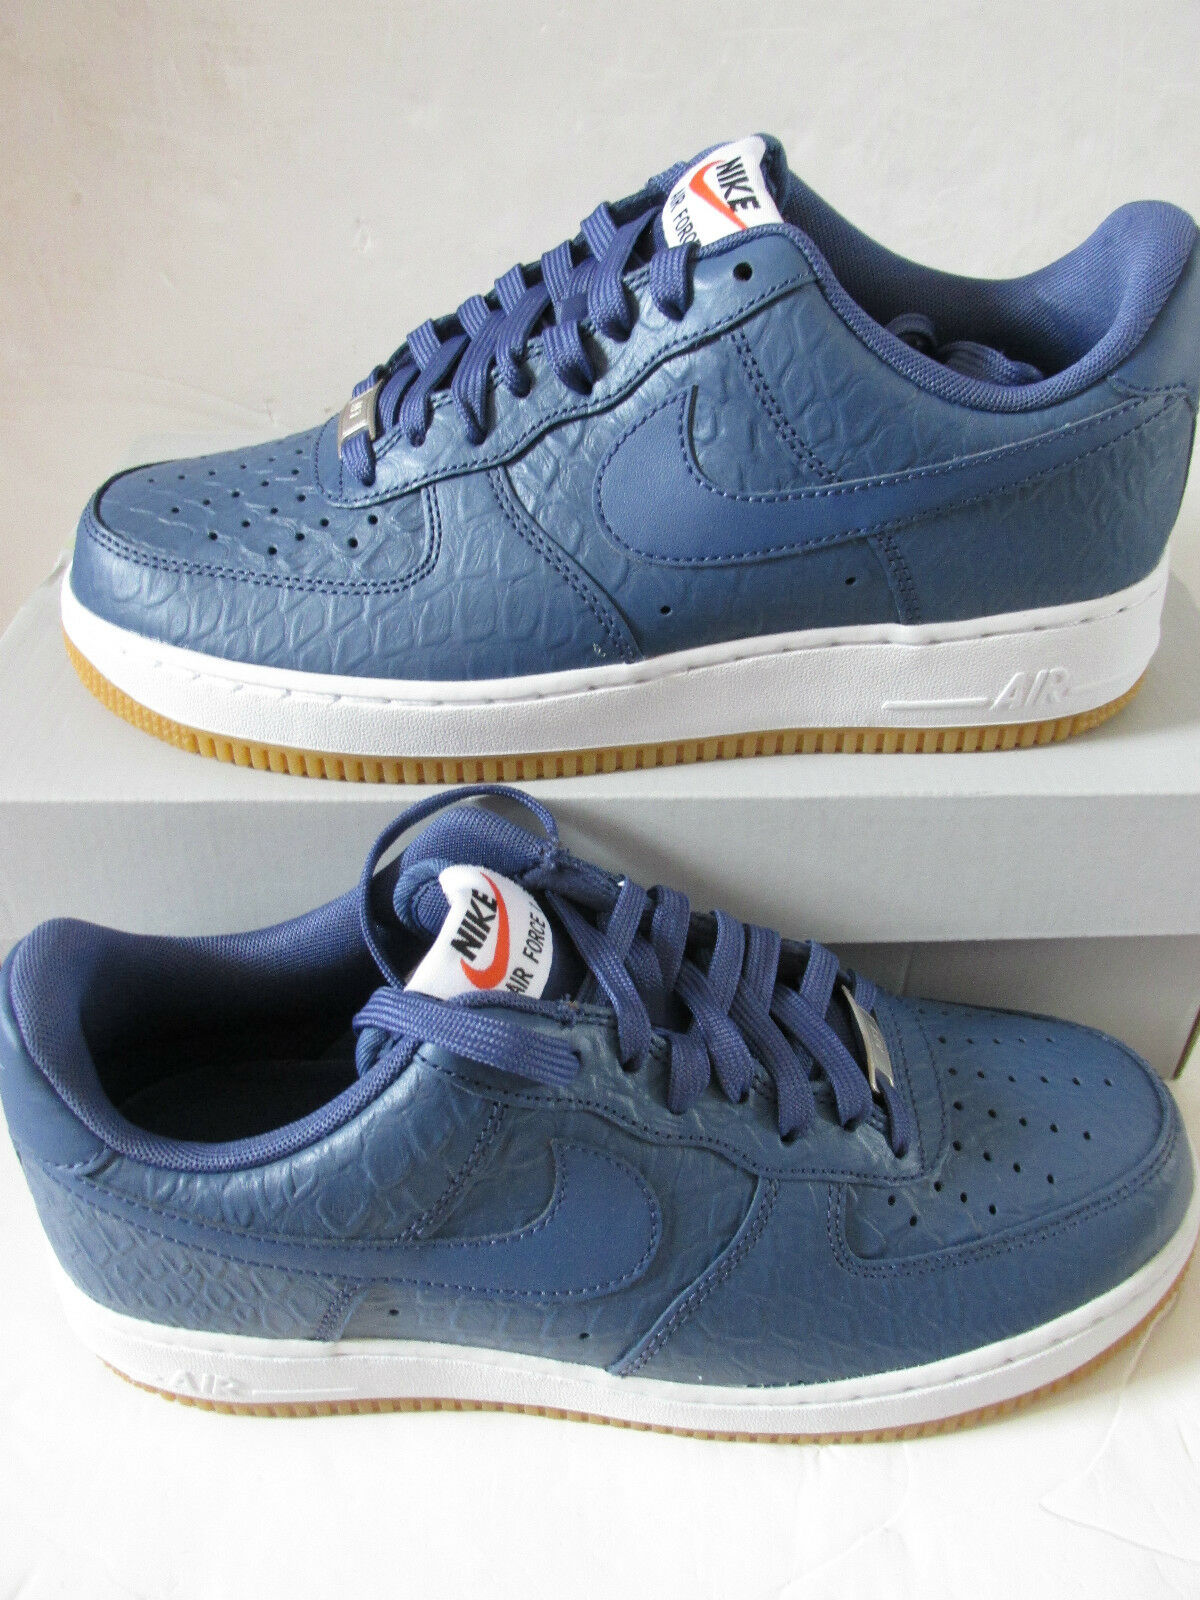 The latest discount shoes for men and women nike air force 1 '07 LV8 mens trainers 718152 400 sneakers shoes